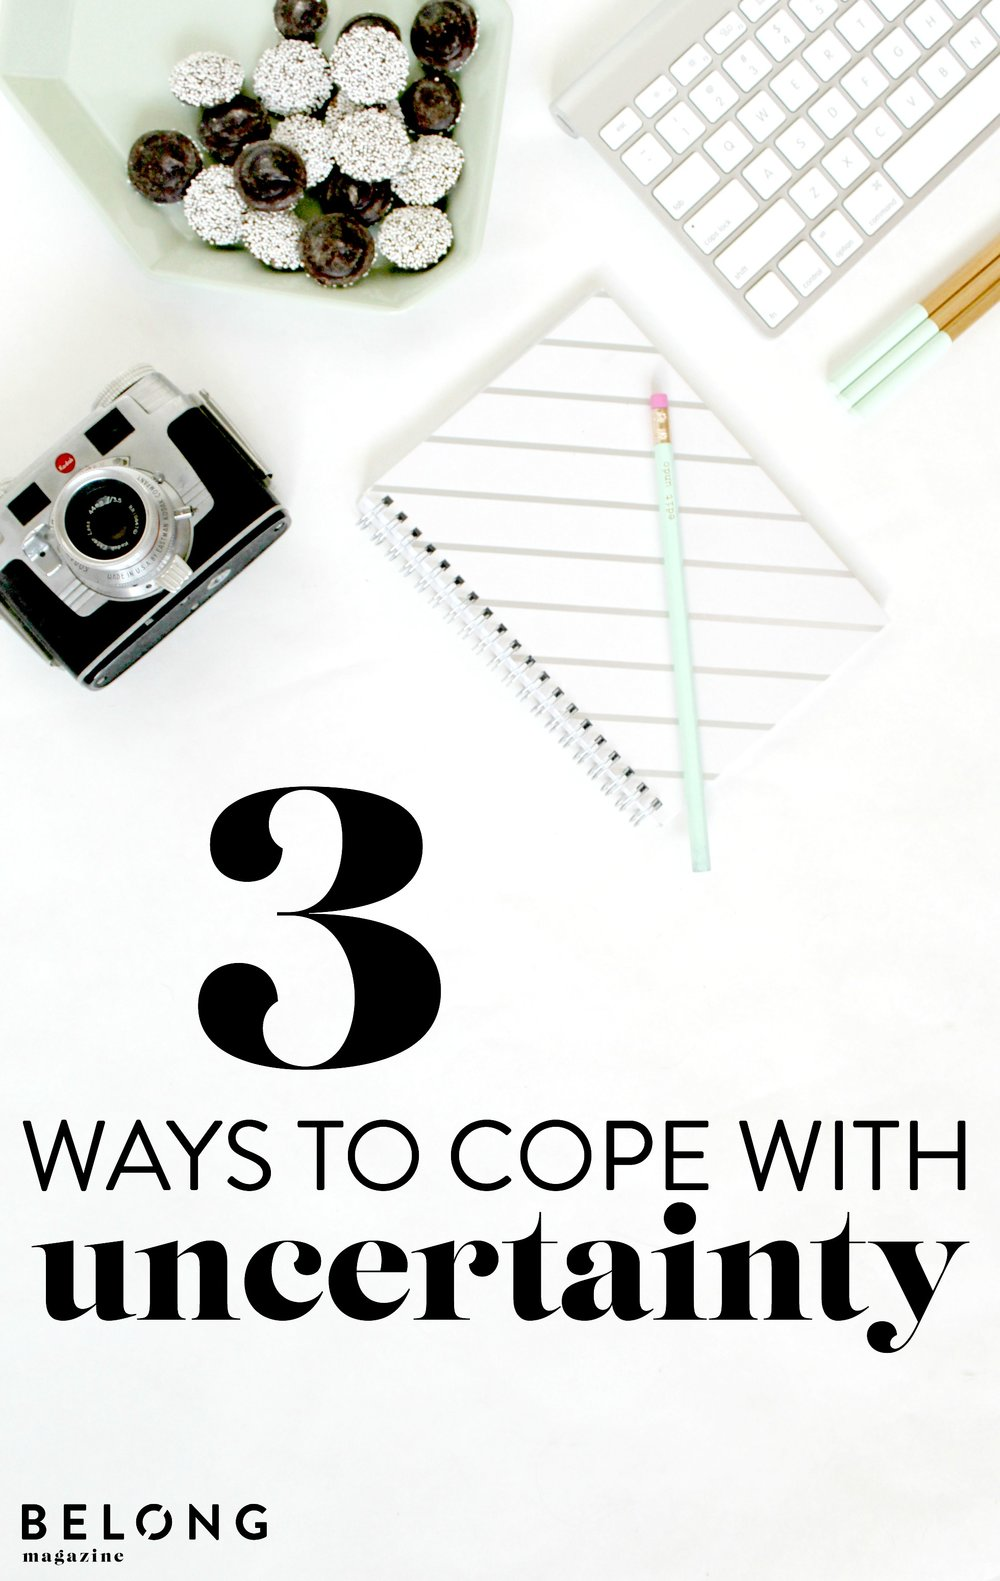 3 ways to cope with uncertainty - belong magazine blog